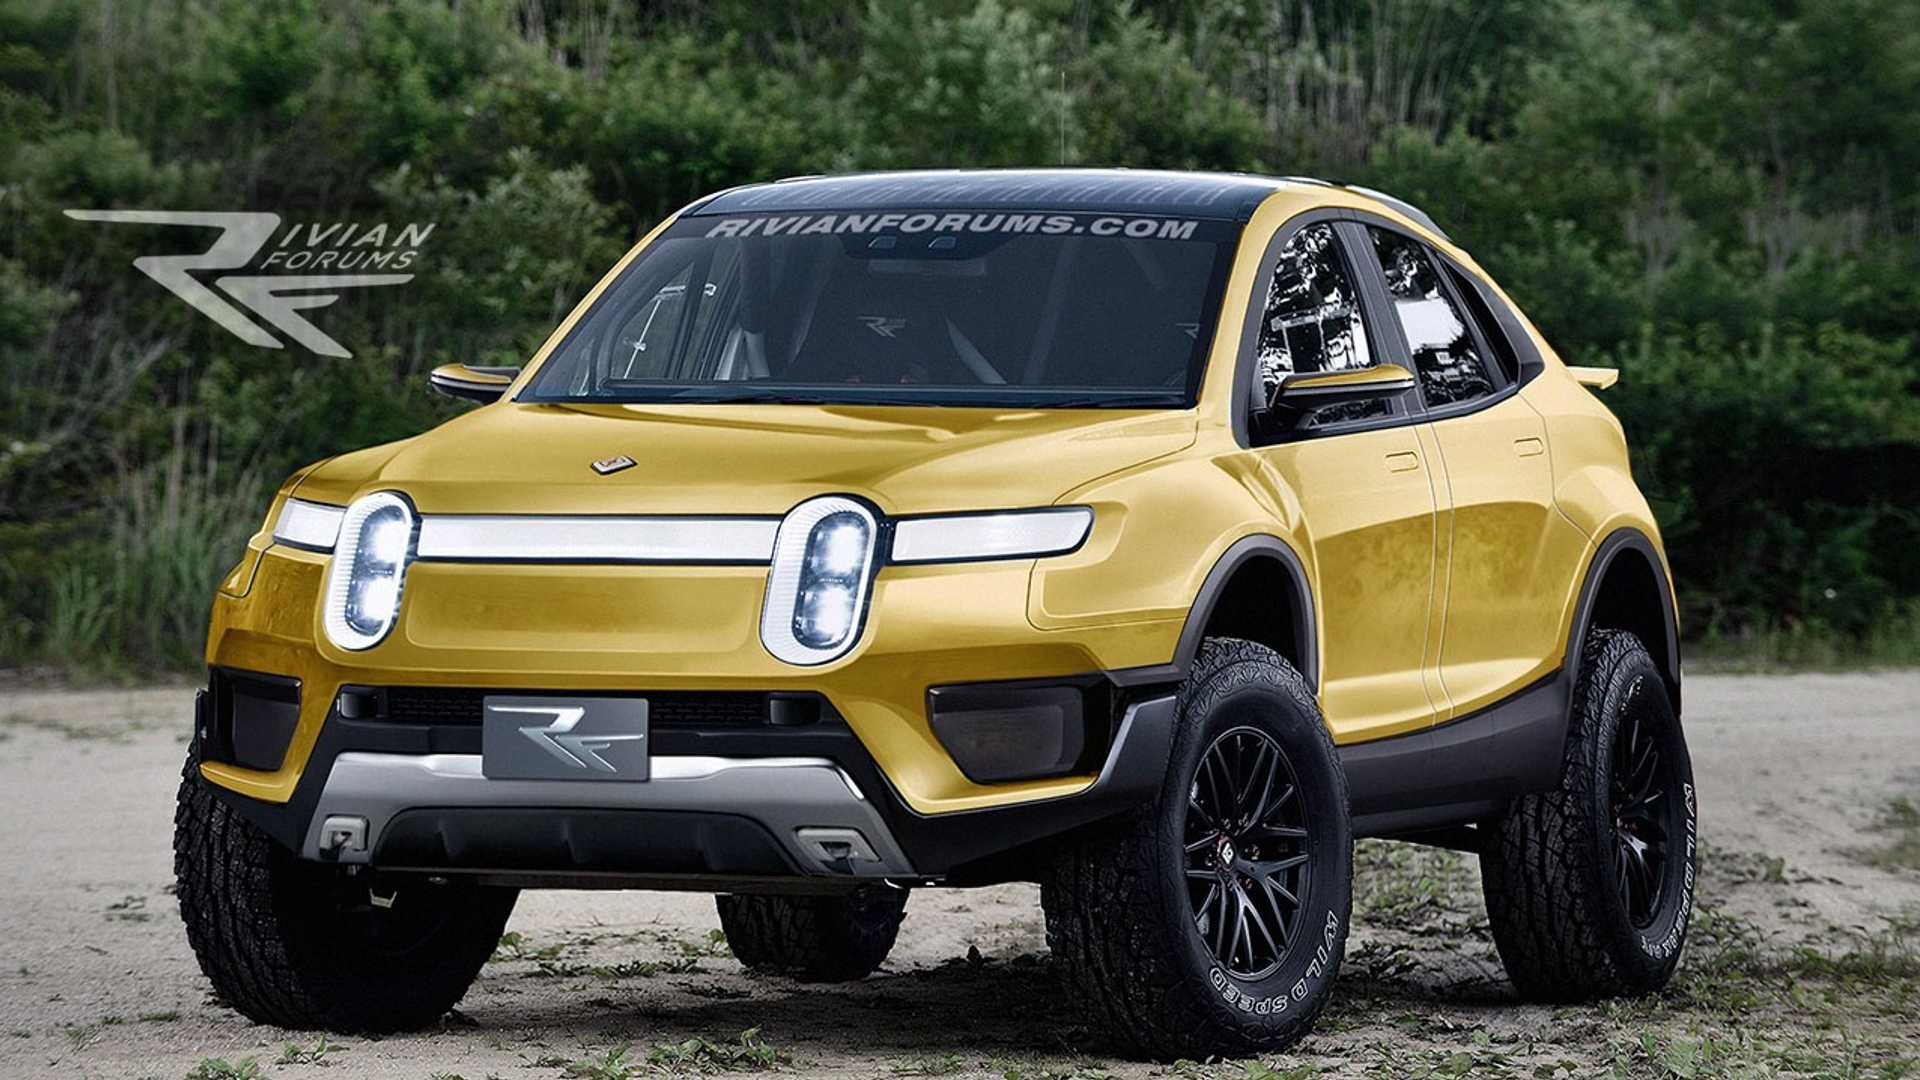 Radical Rivian Rally Car Imagined In These Impressive Renderings